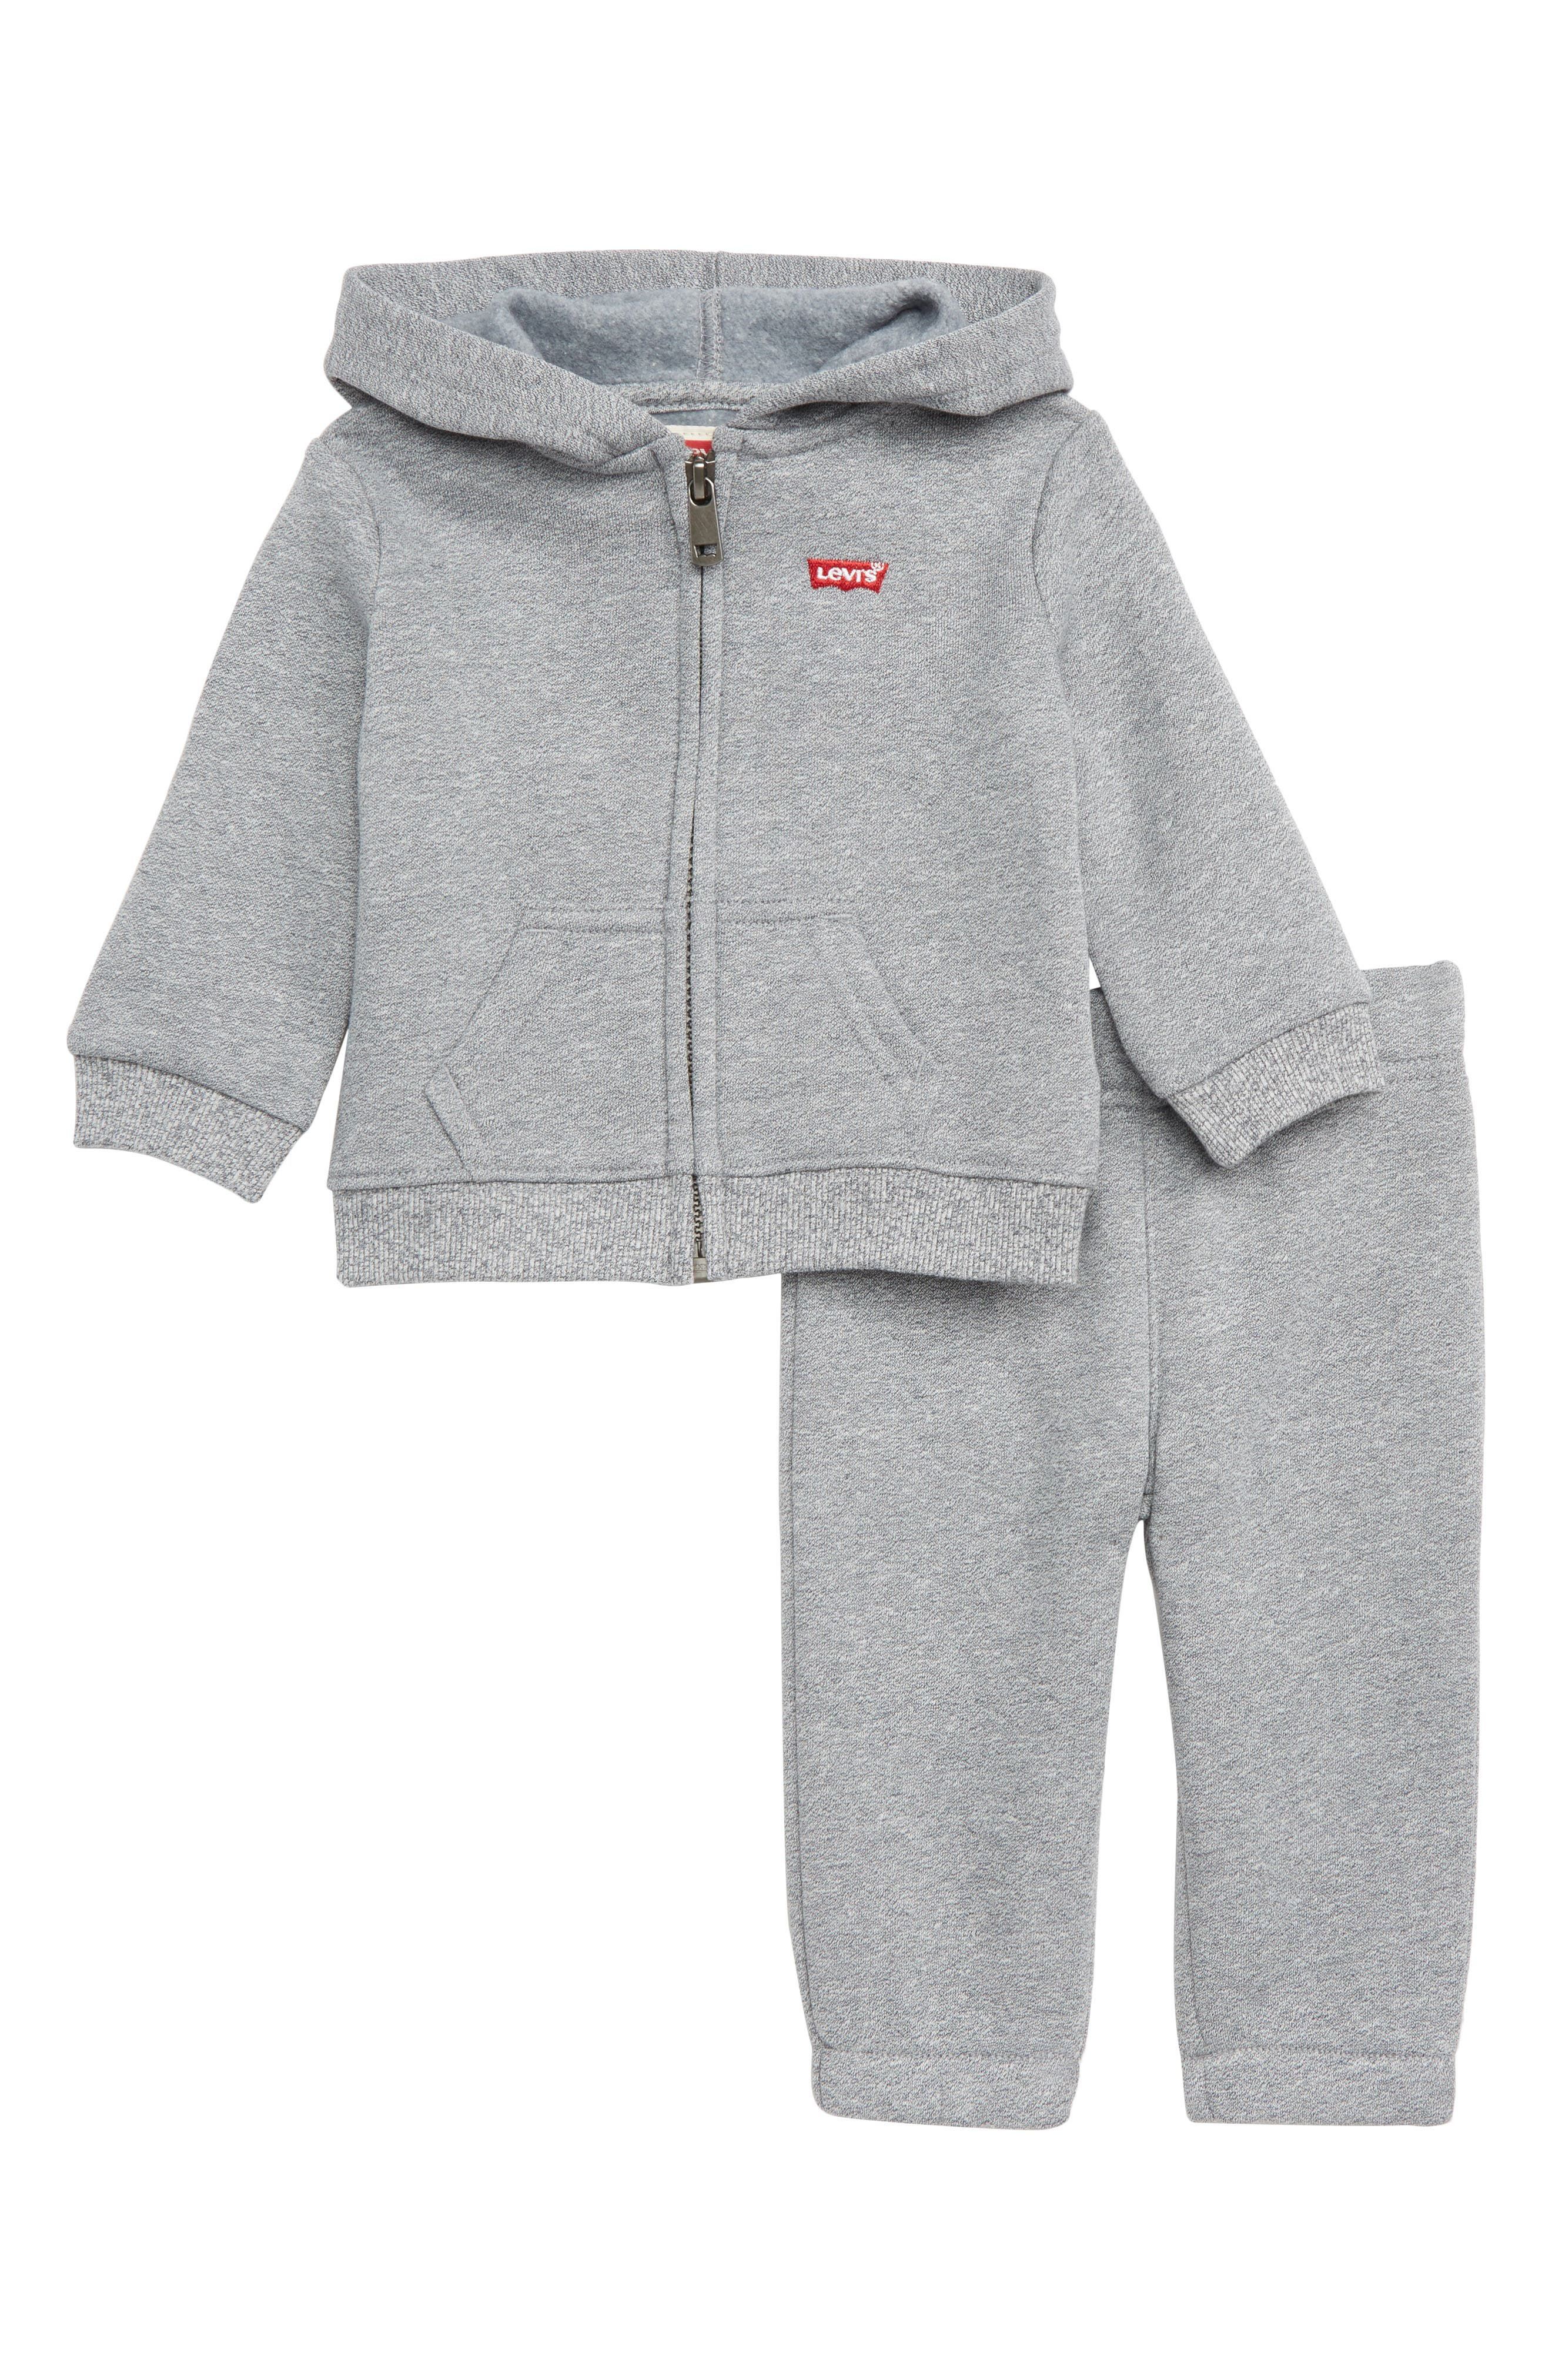 Marled Two Piece Hoodie Set,                             Main thumbnail 1, color,                             MARLED GREY